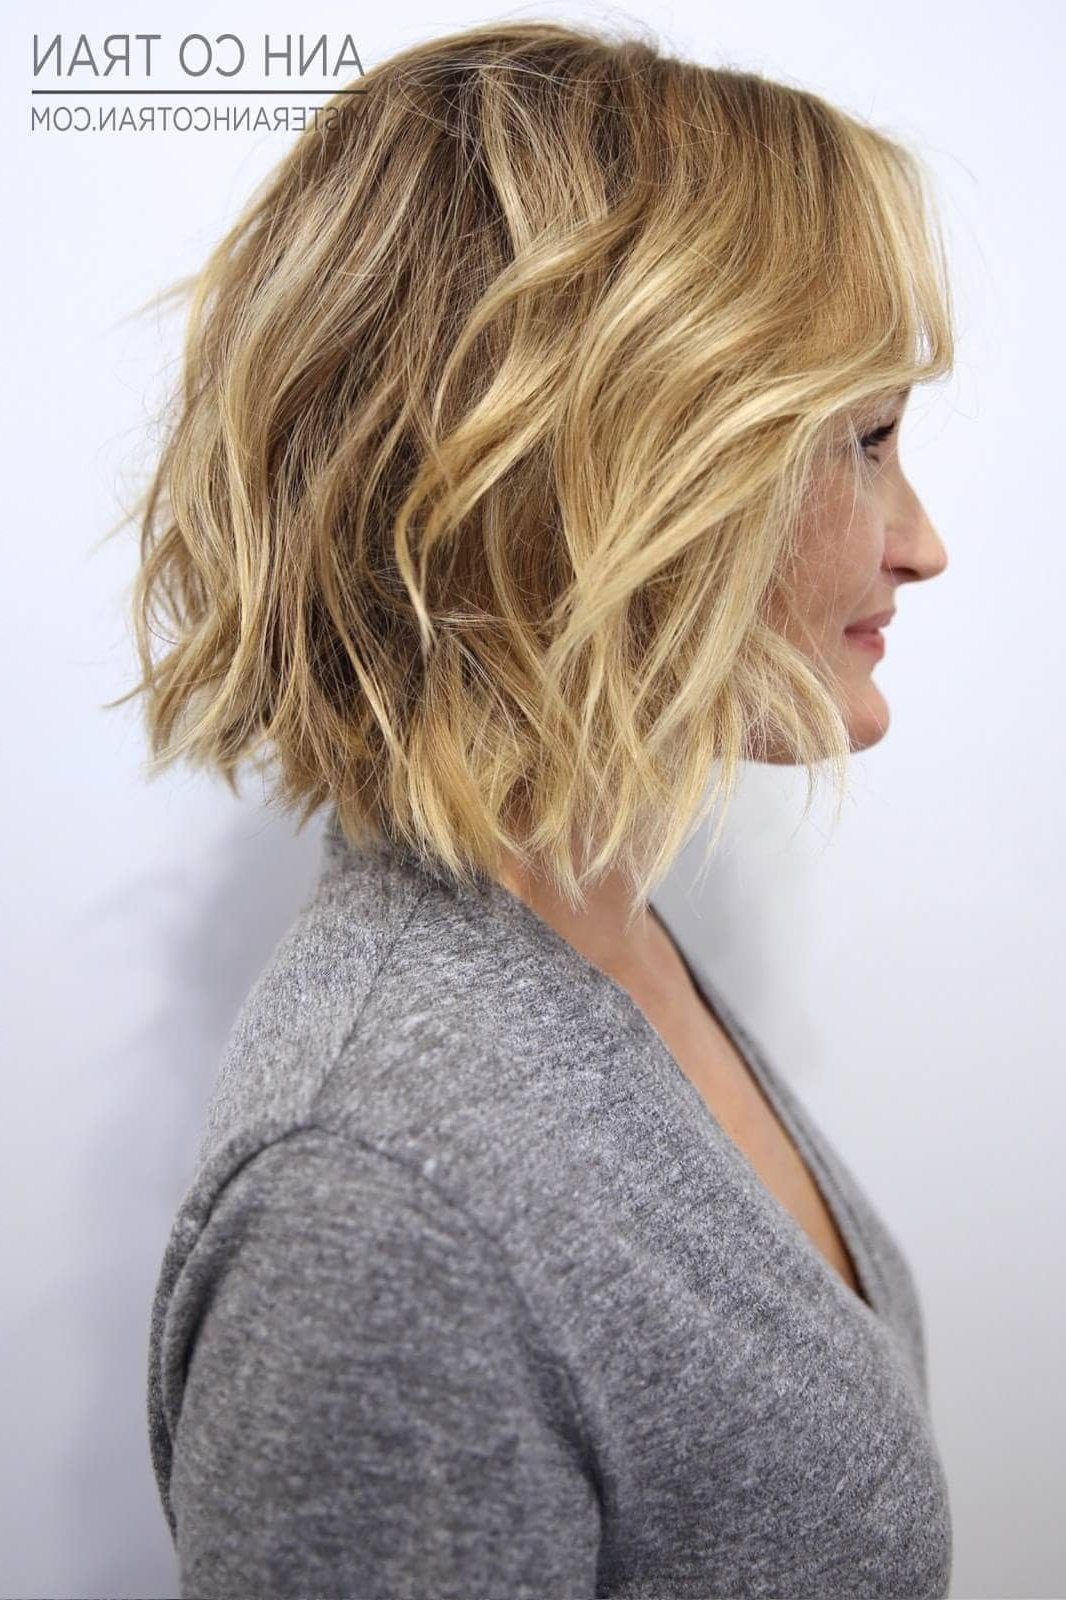 Favorite Wispy Layered Hairstyles For Long Fine Hair Intended For 50 Ways To Wear Short Hair With Bangs For A Fresh New Look (View 12 of 20)